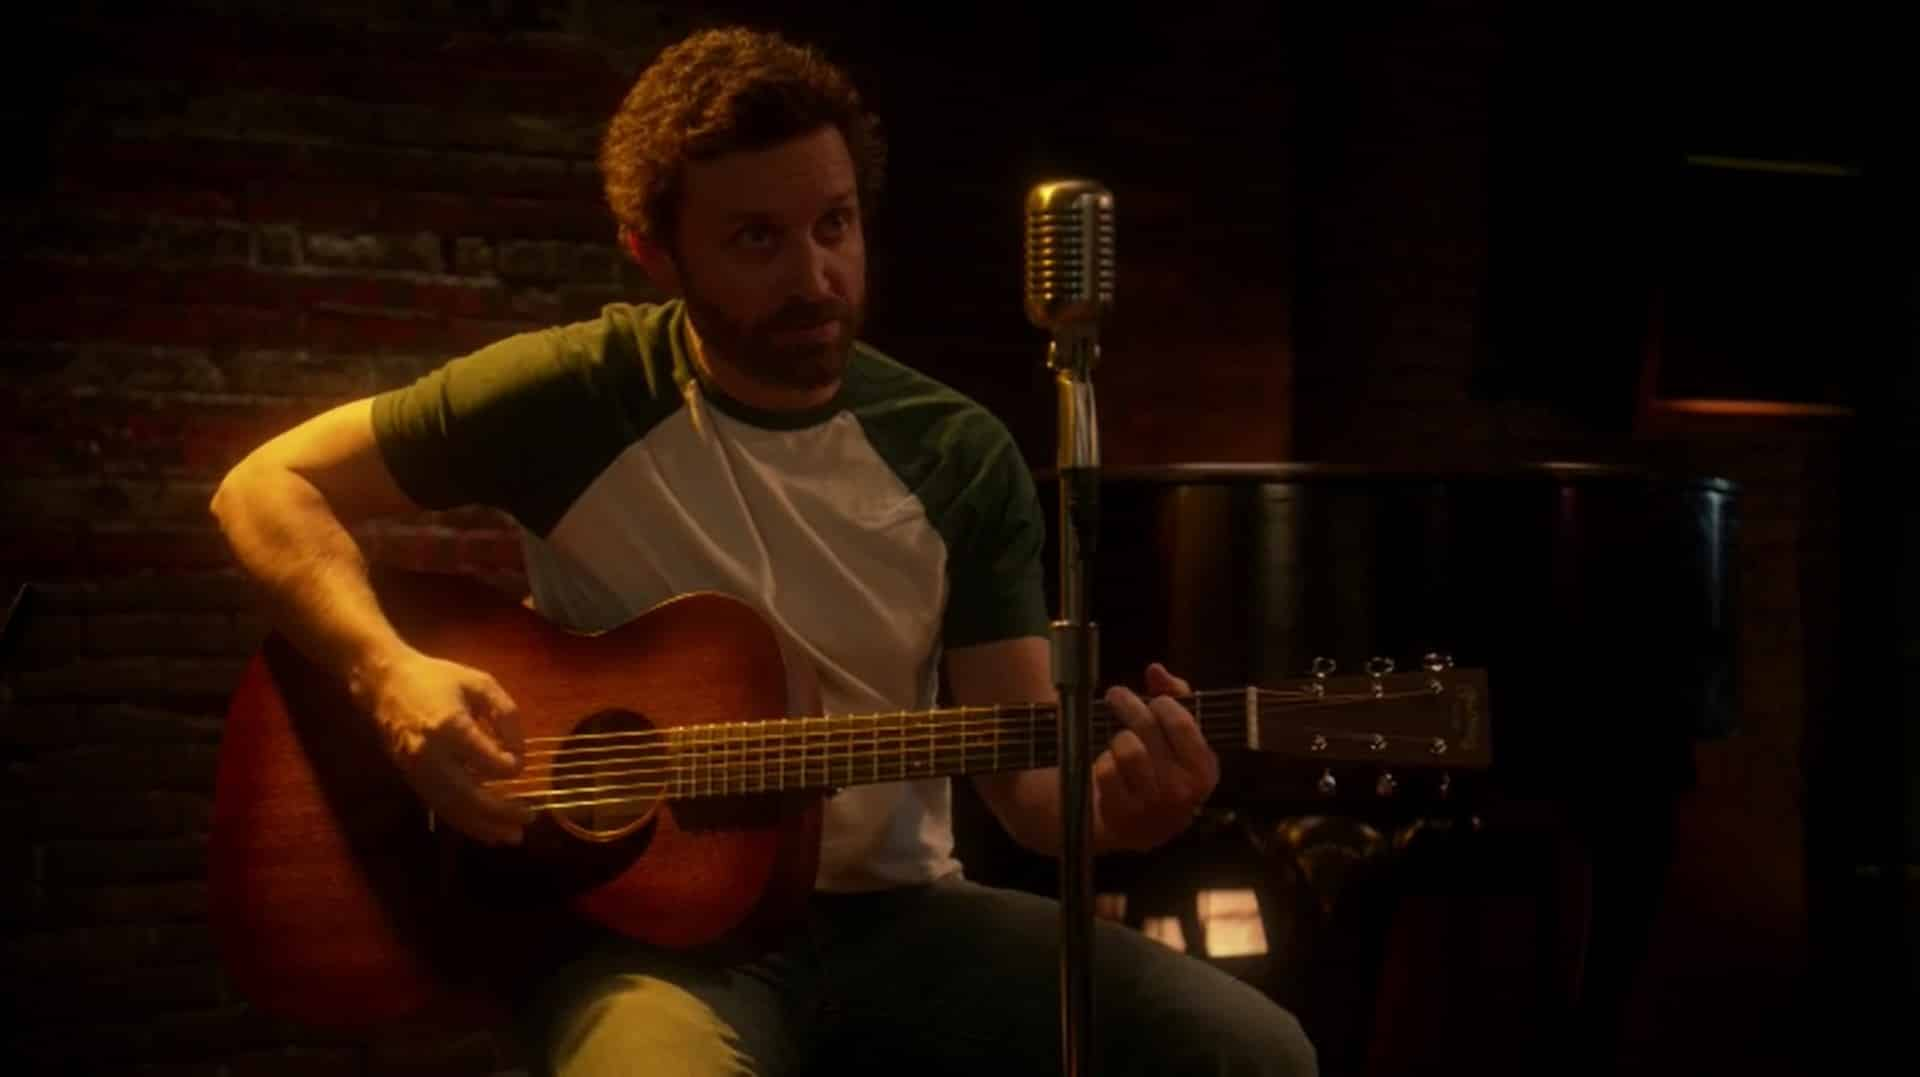 11x20-dont-call-me-shurley-god-chuck-playing-guitar